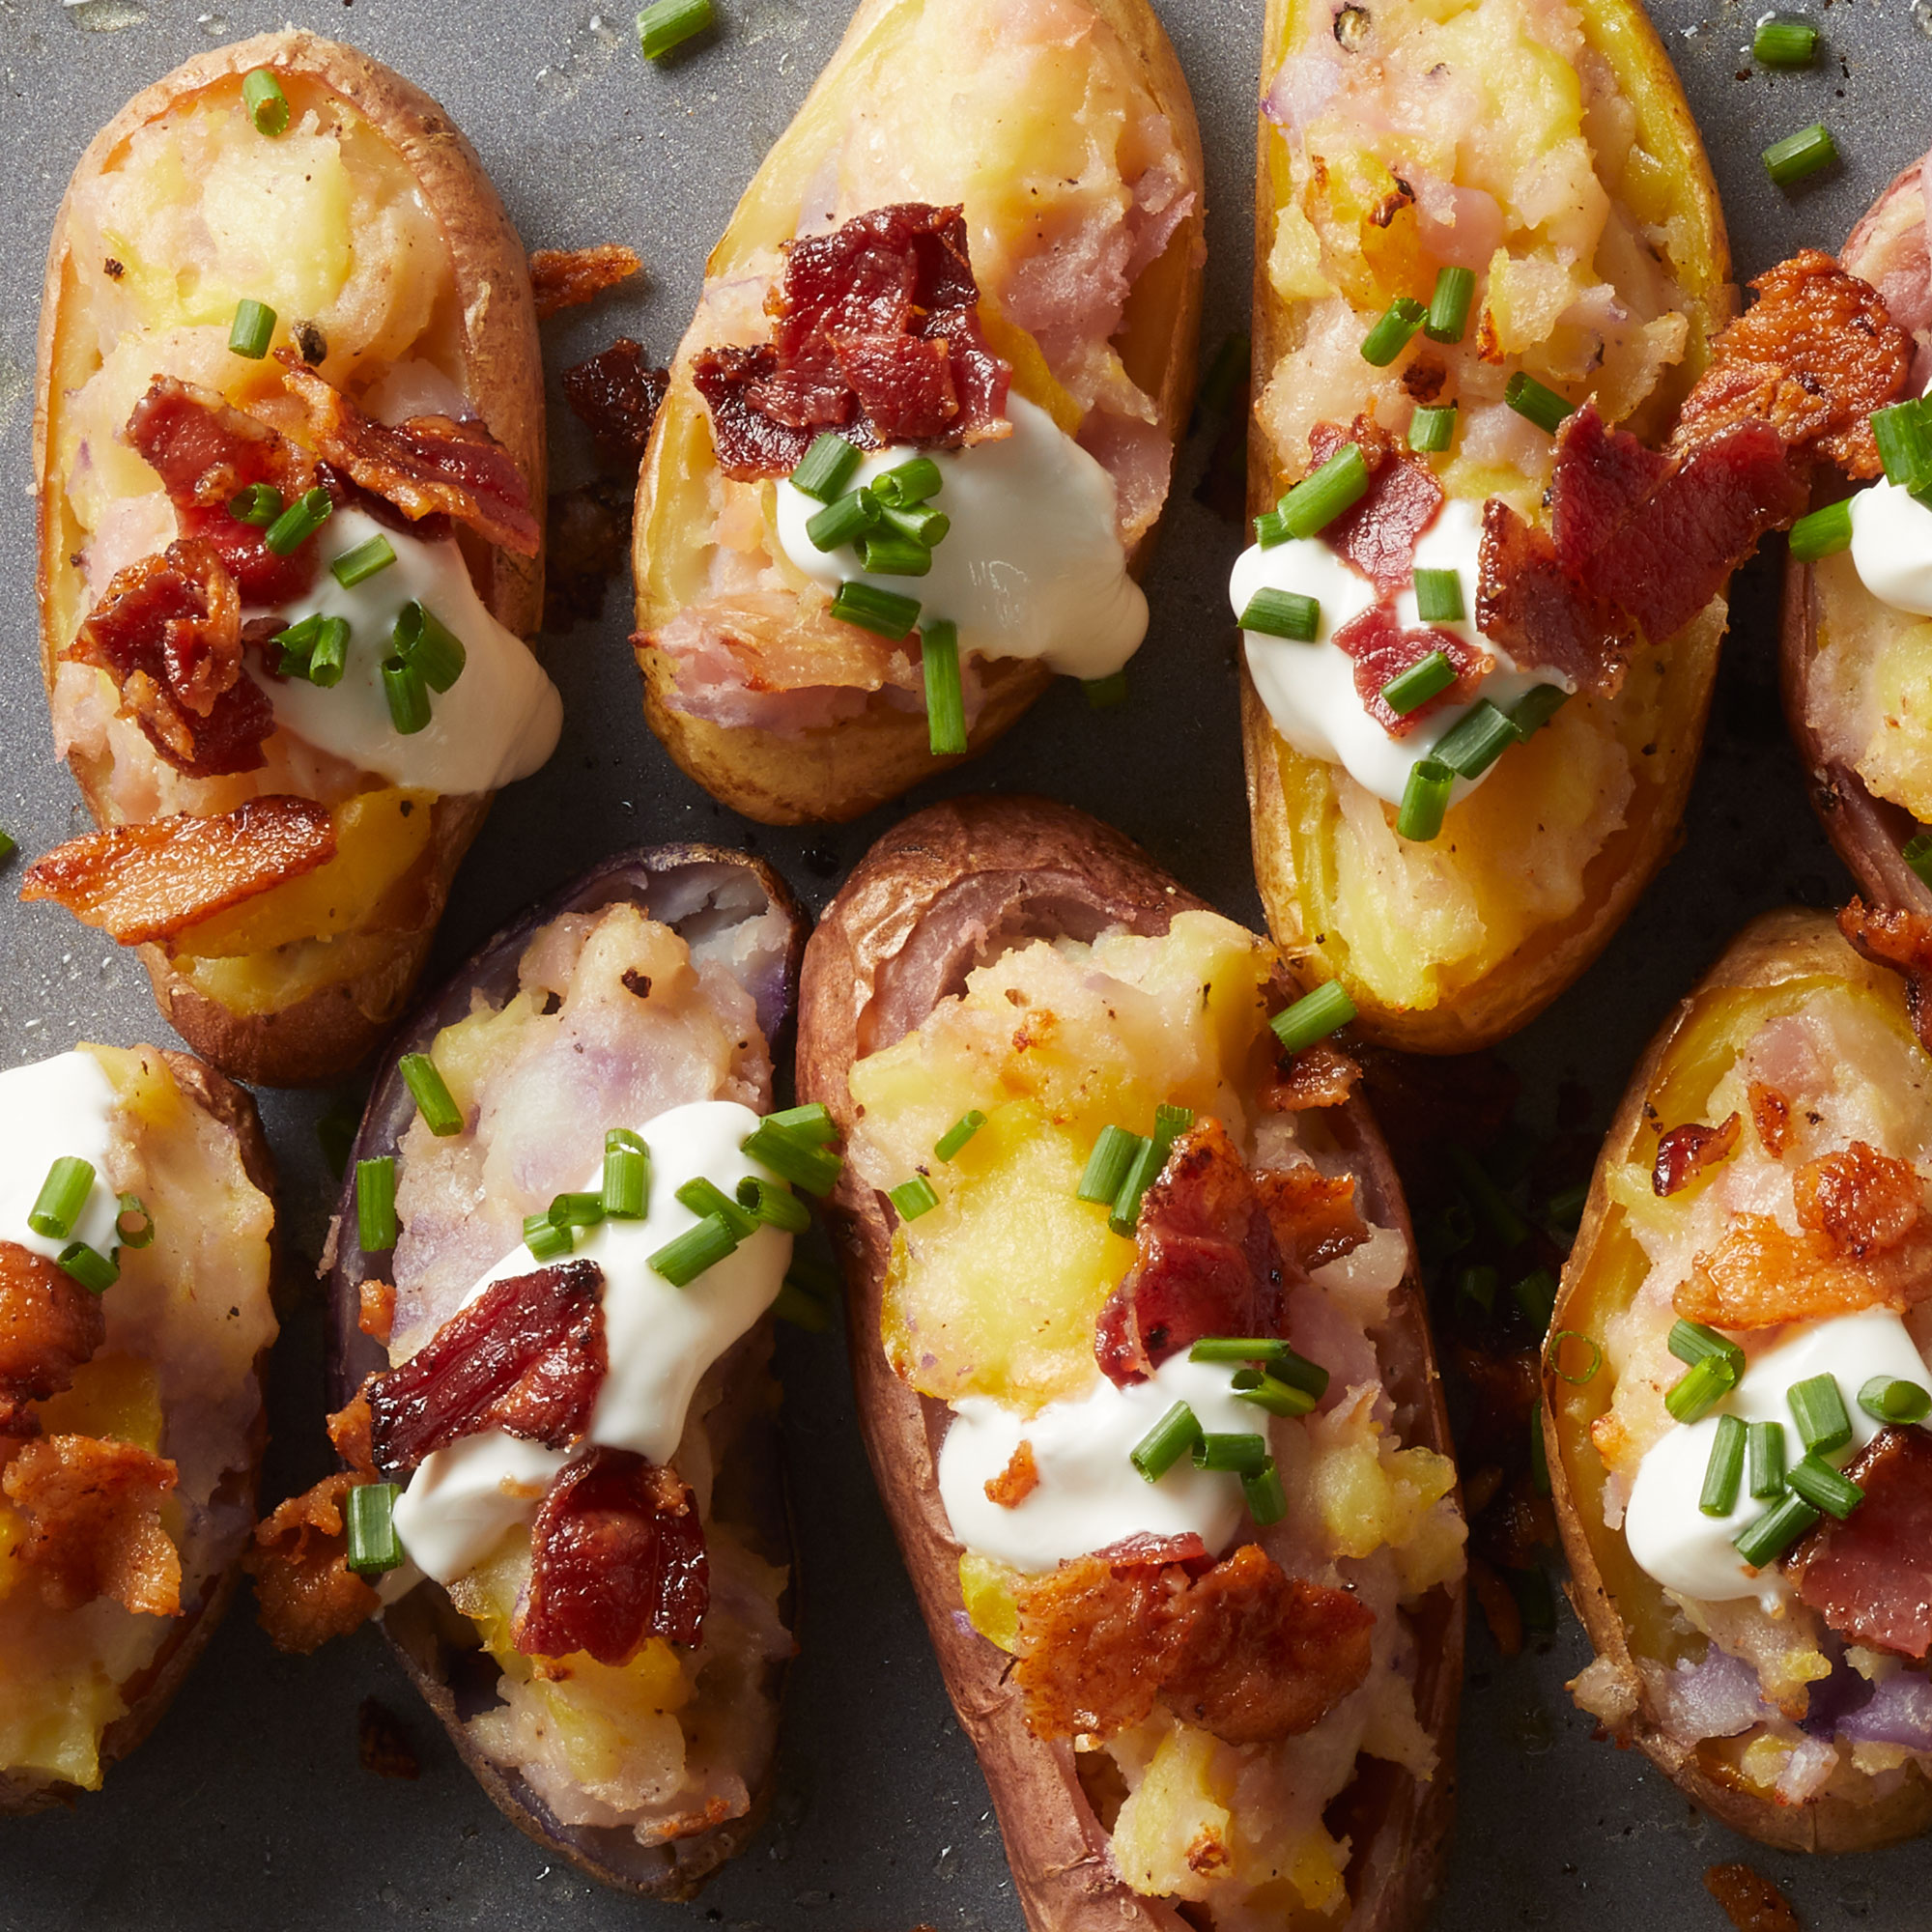 Loaded Fingerling Potatoes